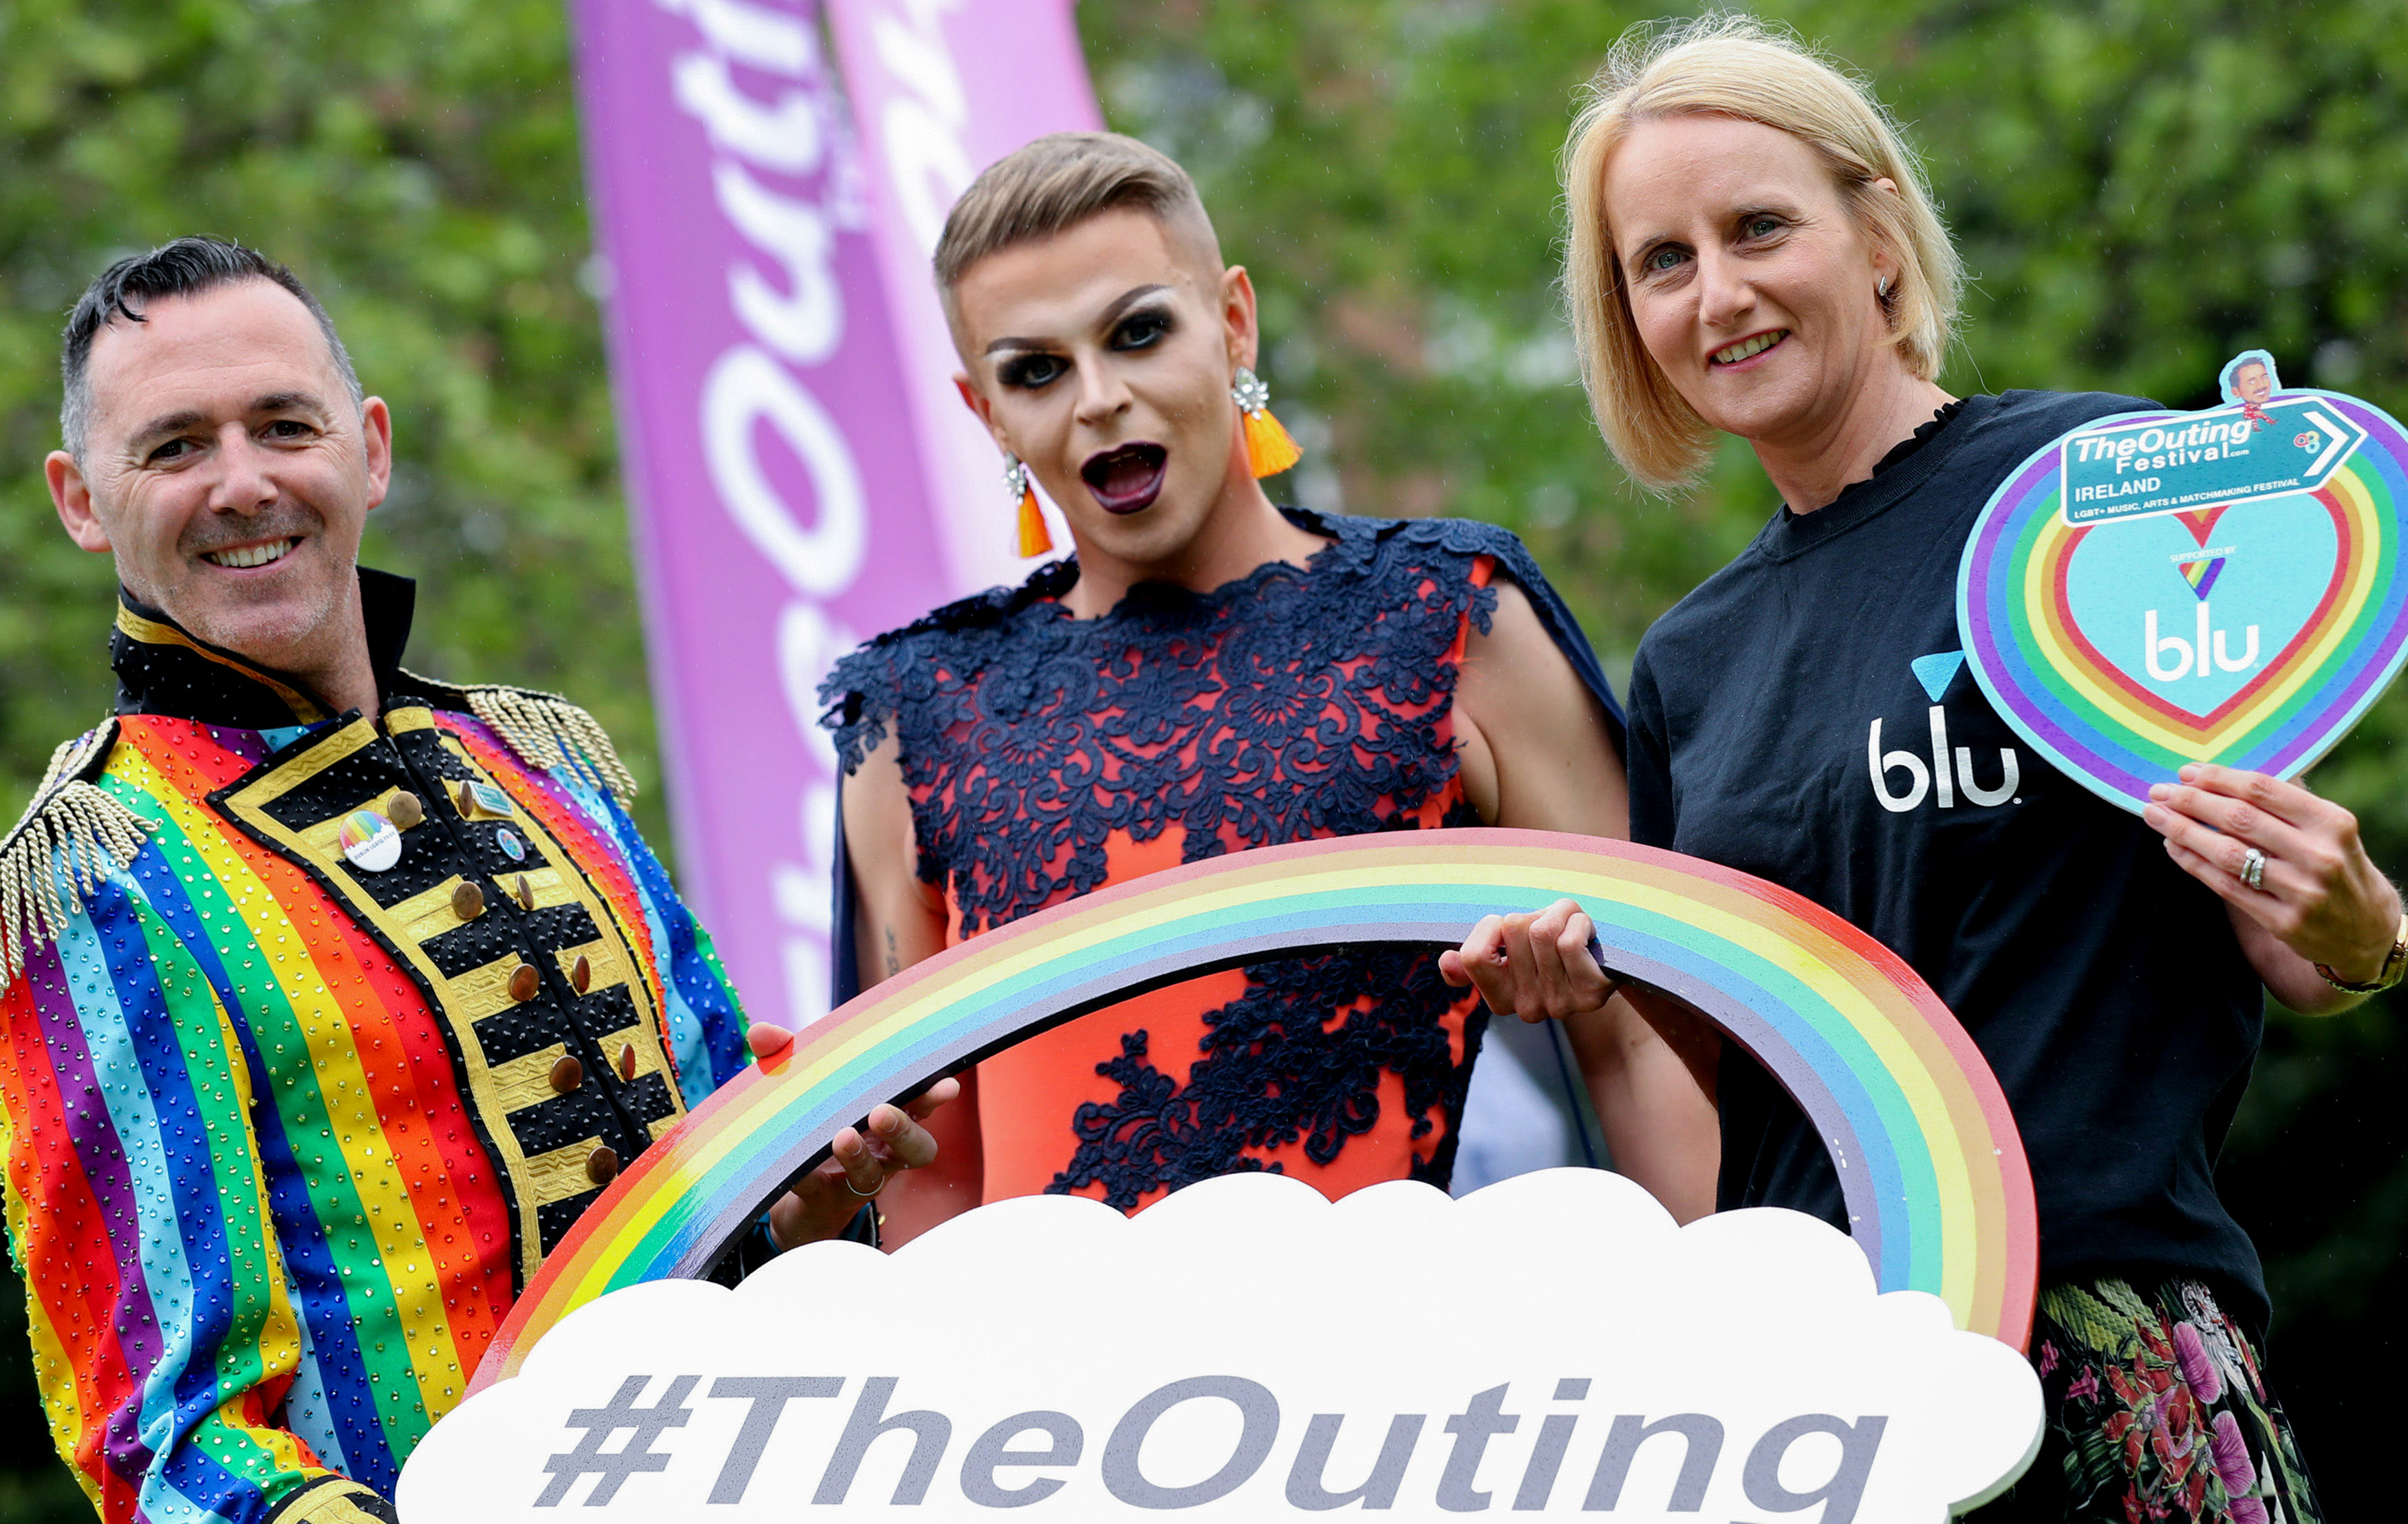 The Outing Festival - The Outing Festival